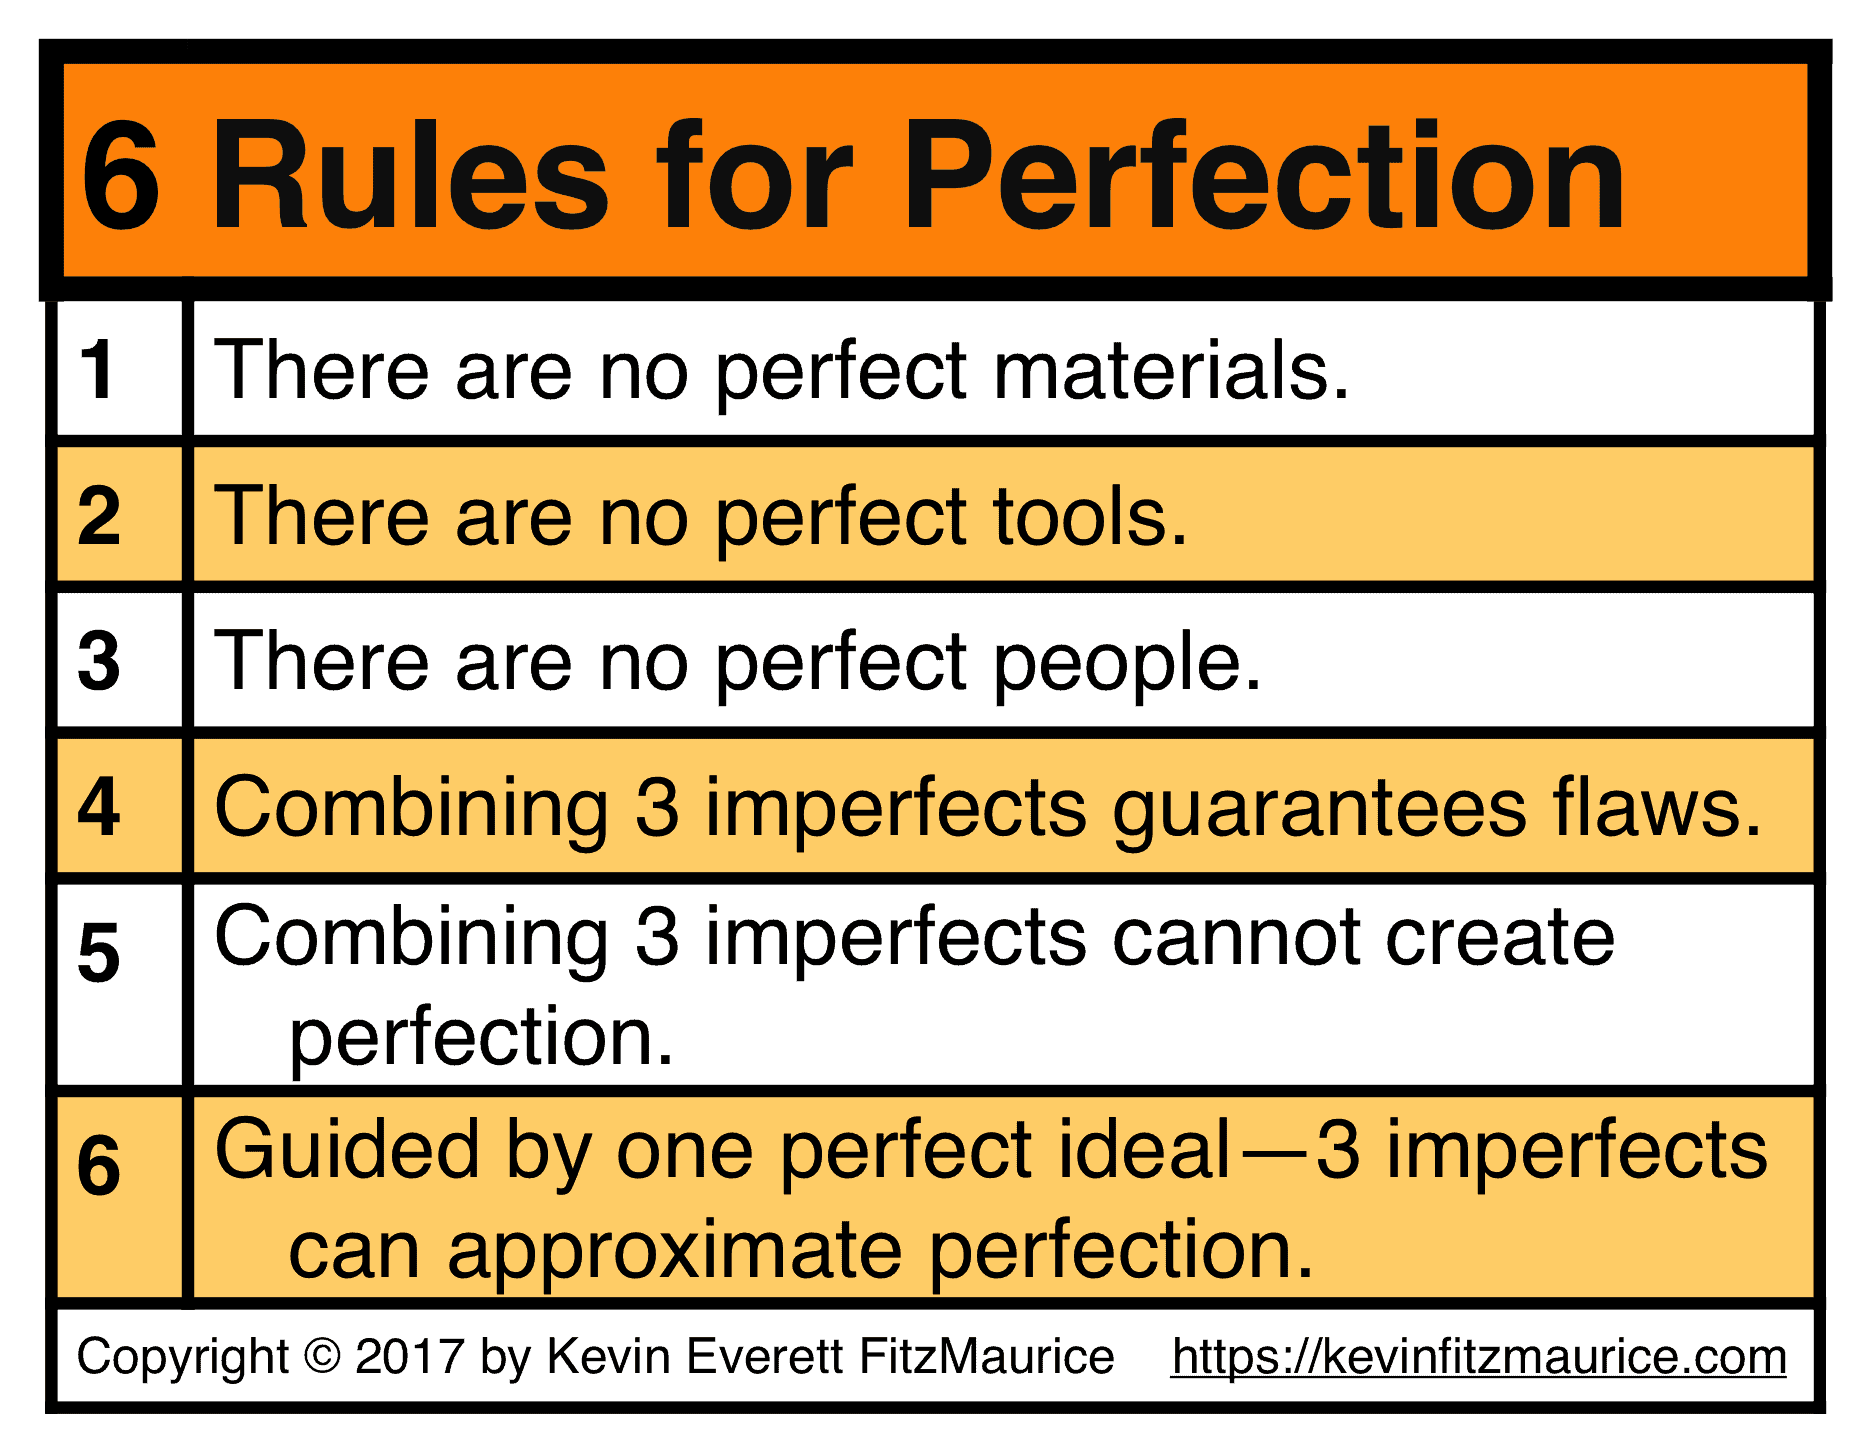 6 Rules for Perfection